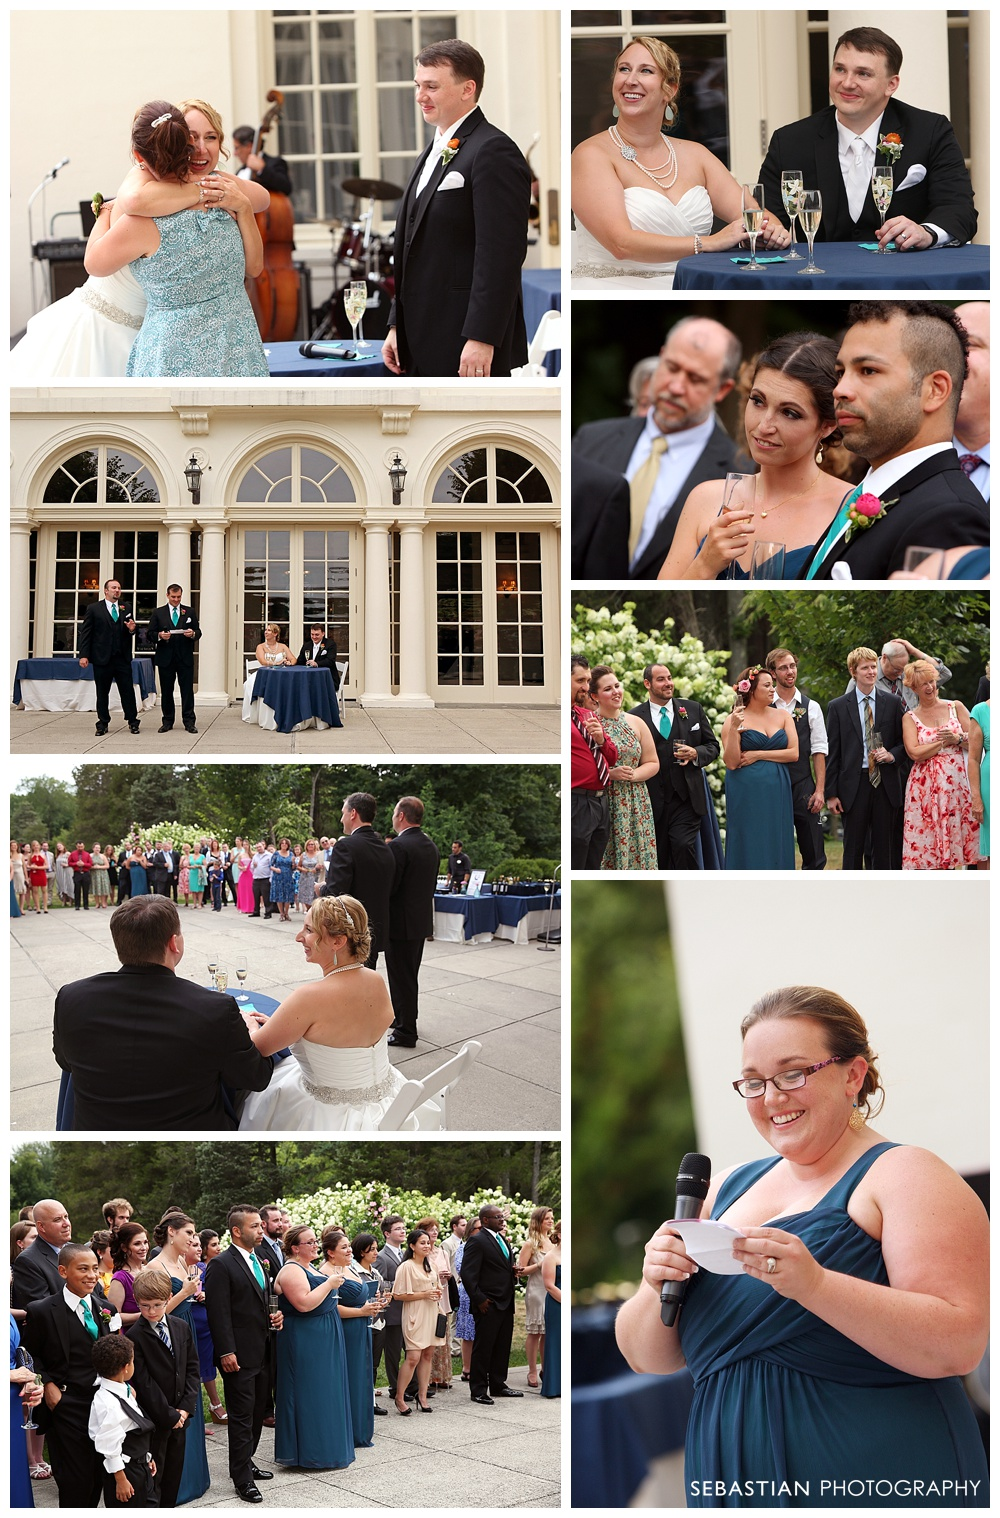 Sebastian_Photography_Wadsworth_Mansion_Wedding_Pictures_CT_53.jpg